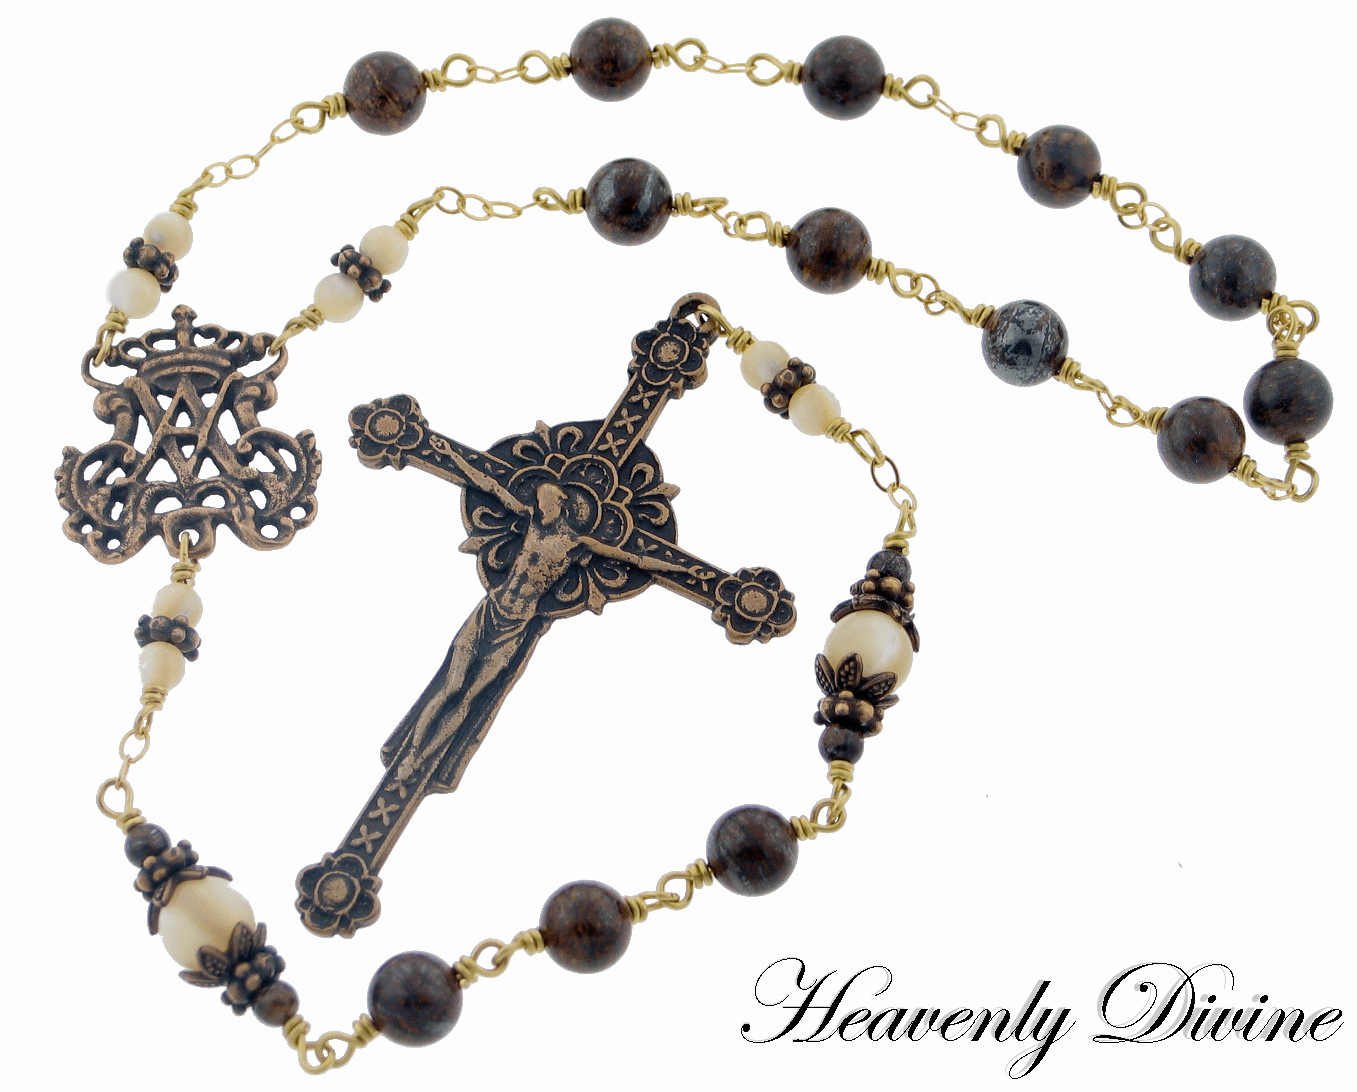 Bronze Bronzite and Mother of Pearl Renaissance Pocket Rosary by Heavenly Divine